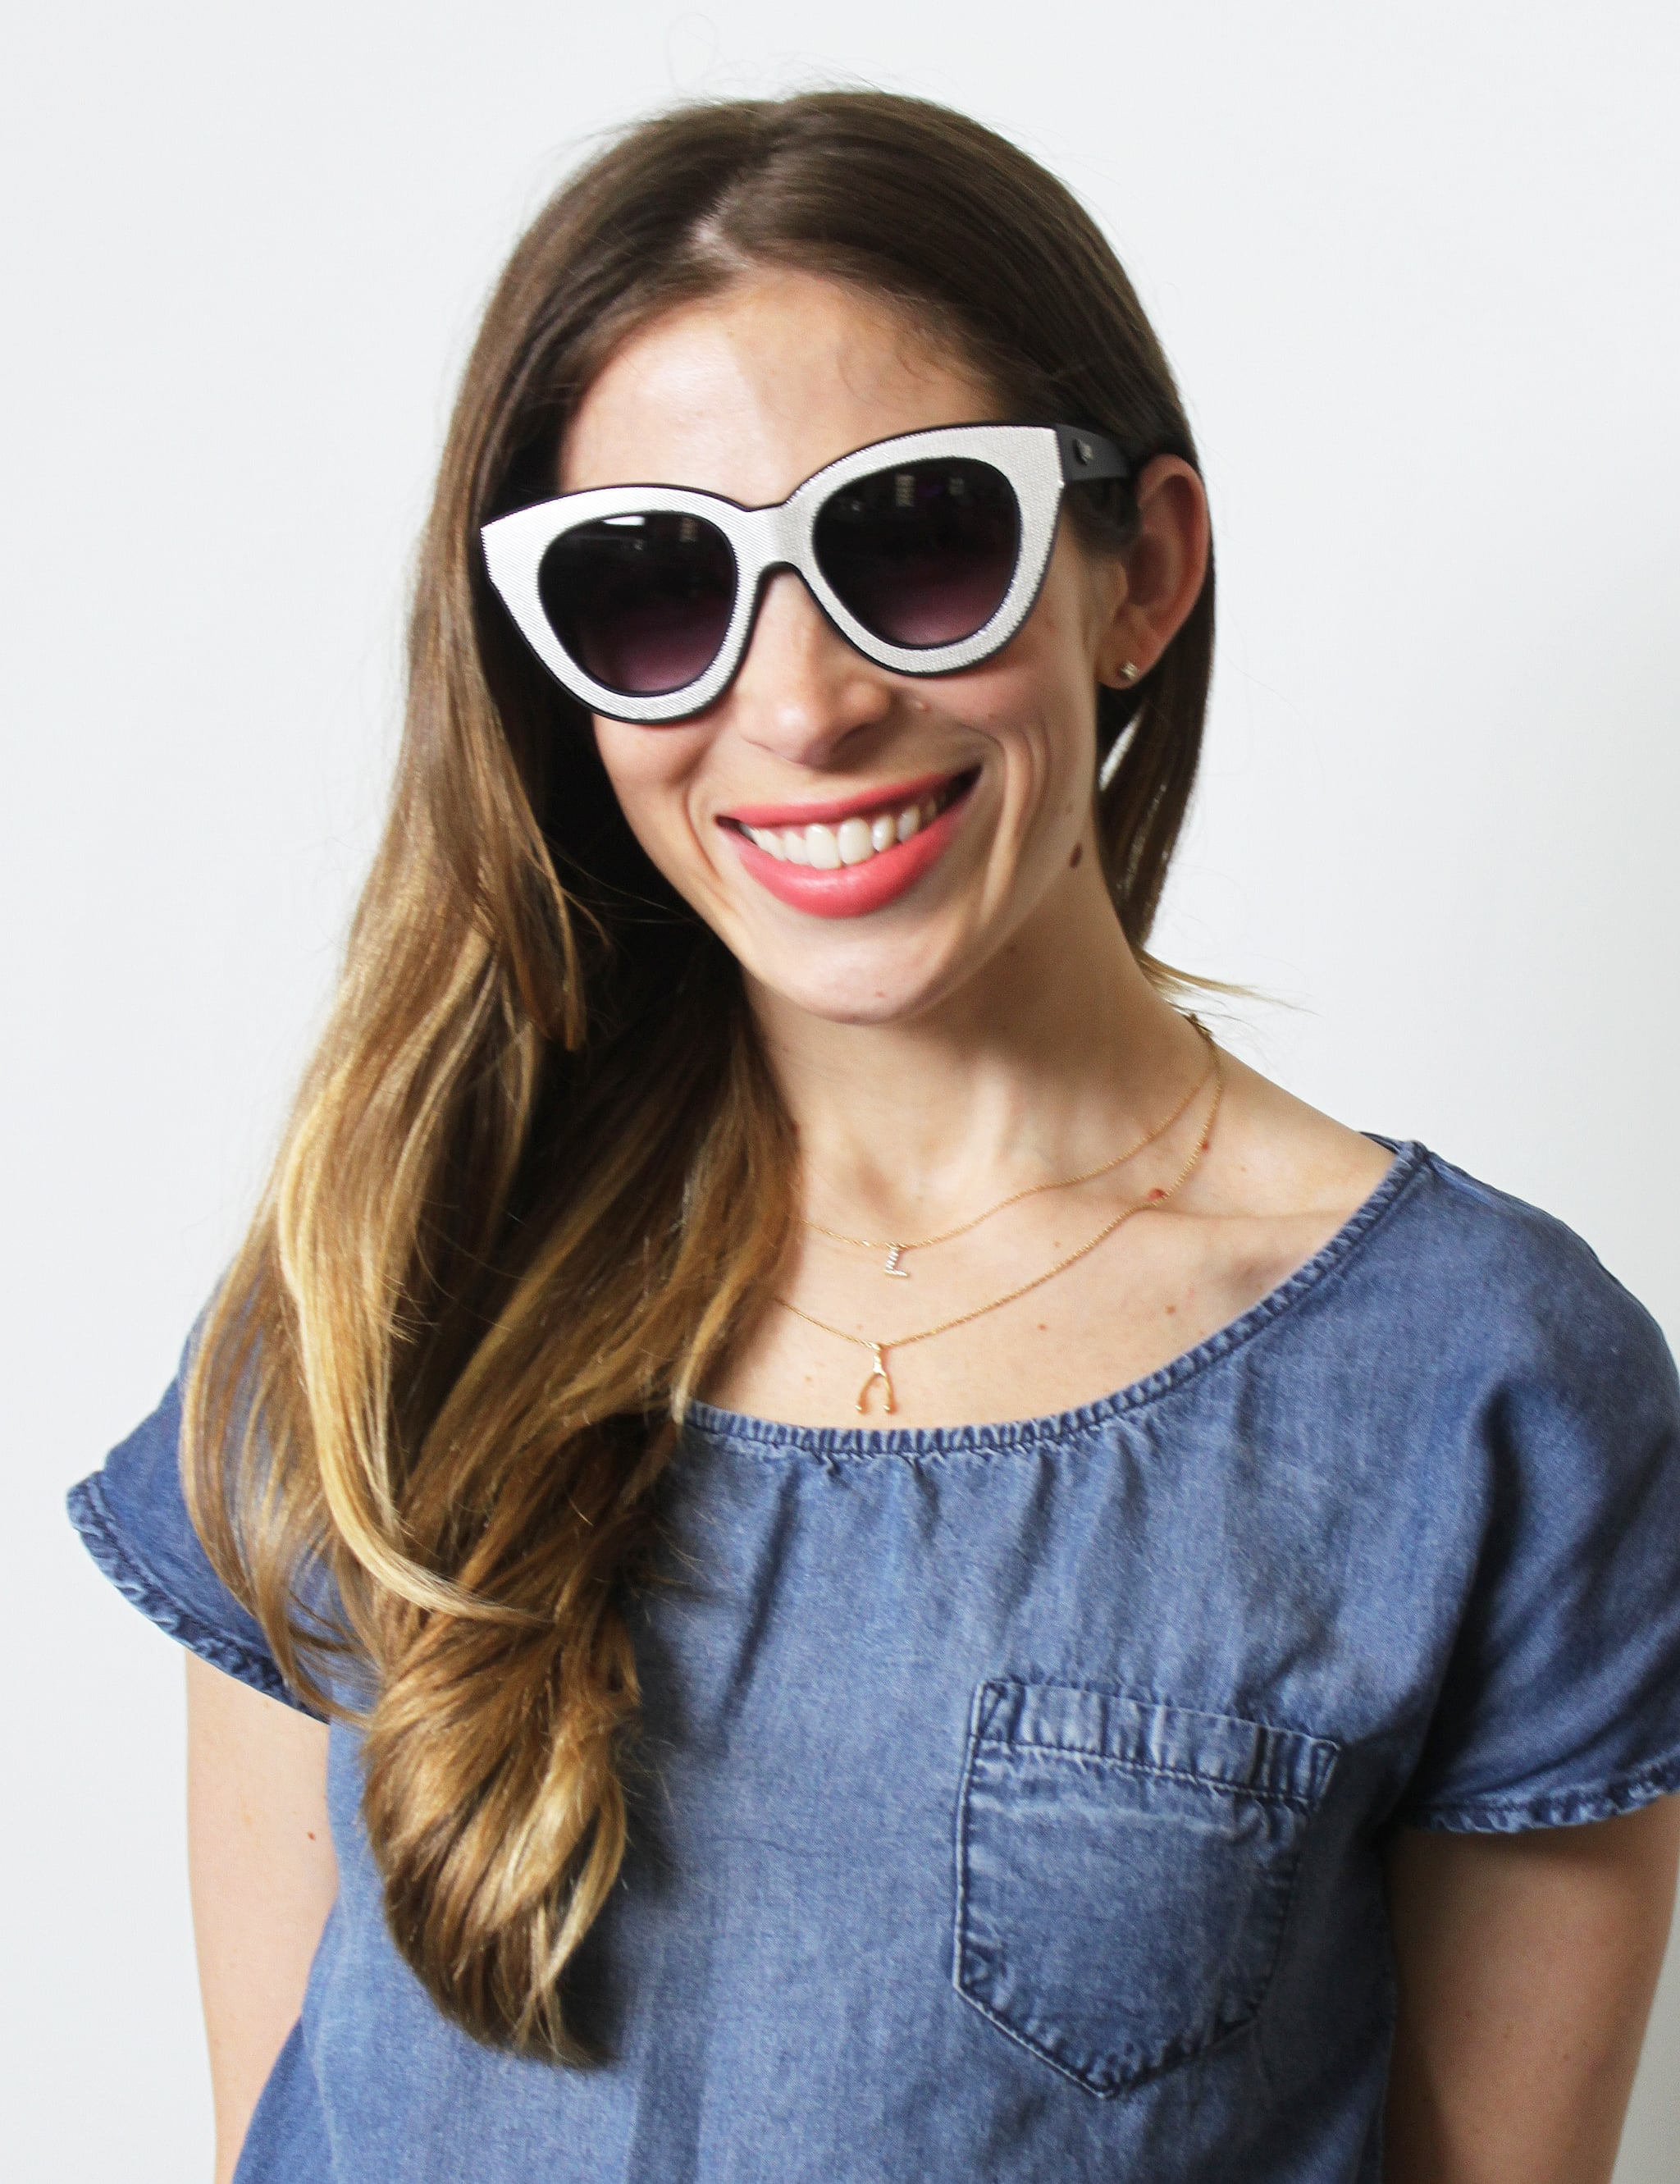 There's absolutely nothing subtle about these black-and-white Nasty Gal frames (similar style: Nasty Gal CRAP Eyewear Diamond Brunch Shades, $62). A nude lip would be too demure, but a hot pink or bold red might feel too over the top. Meet in the middle with a matte coral like Givenchy Le Rouge in Croisière Coral (similar style: Givenchy Le Rouge in Corail Décolleté, $36).